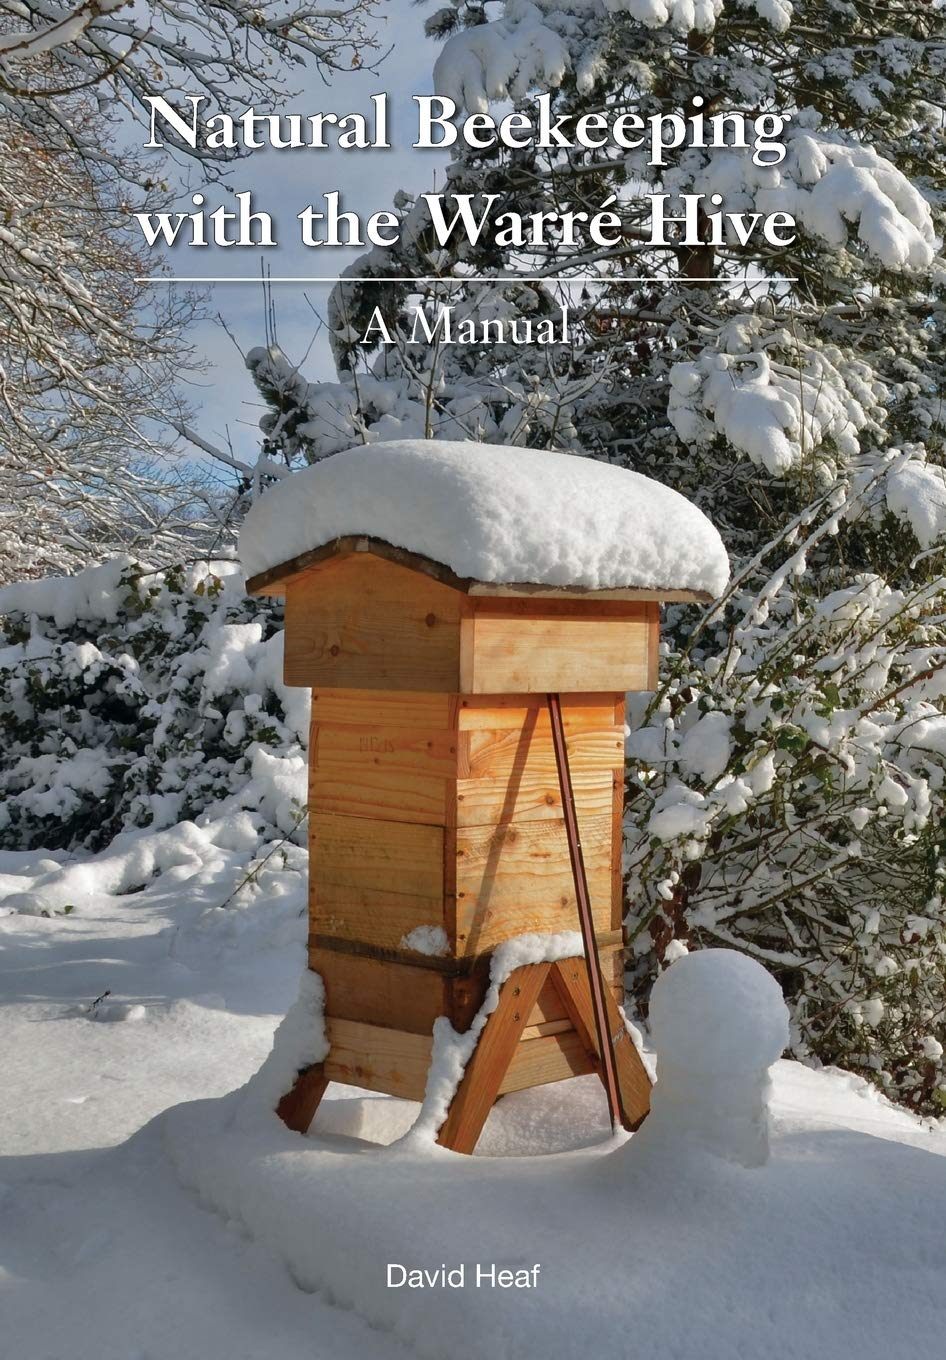 Natural beekeeping with the Warré hive